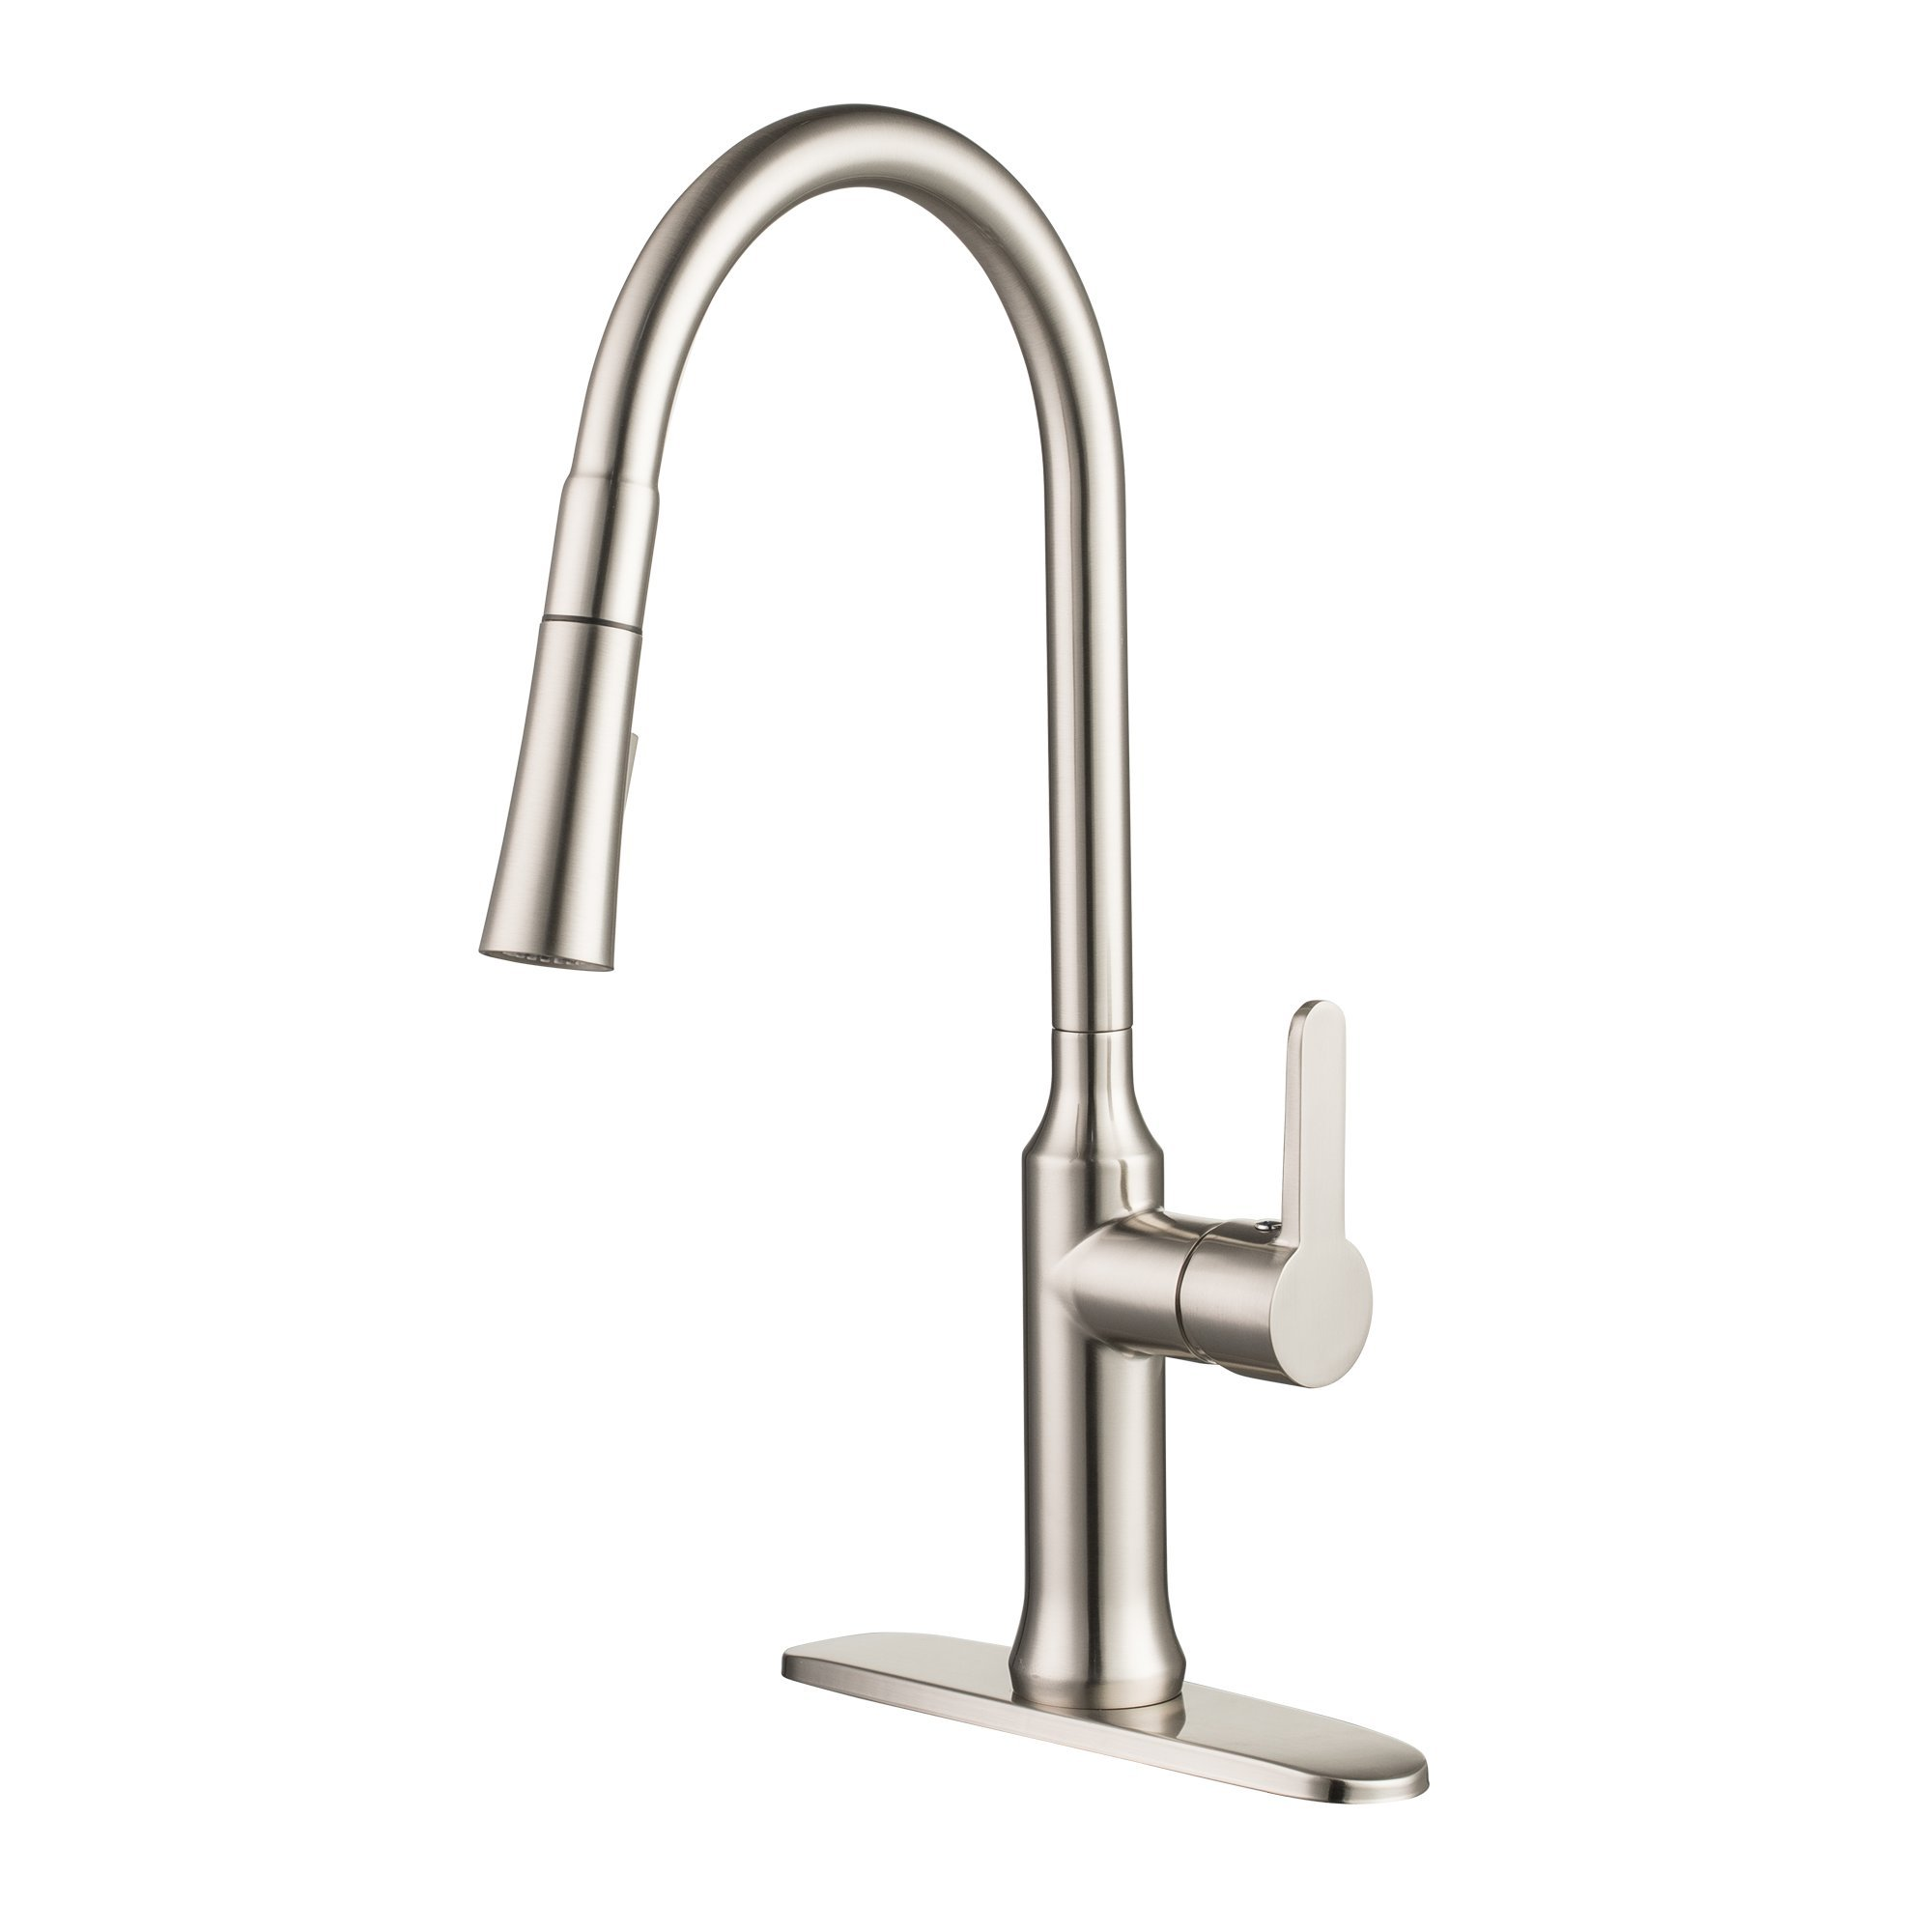 Enzo Rodi Modern High-arc Lead-free Brass Pull-down Kitchen Sink Faucet with Pull-out Sprayer, Stainless Steel, ERF7355389AP-10